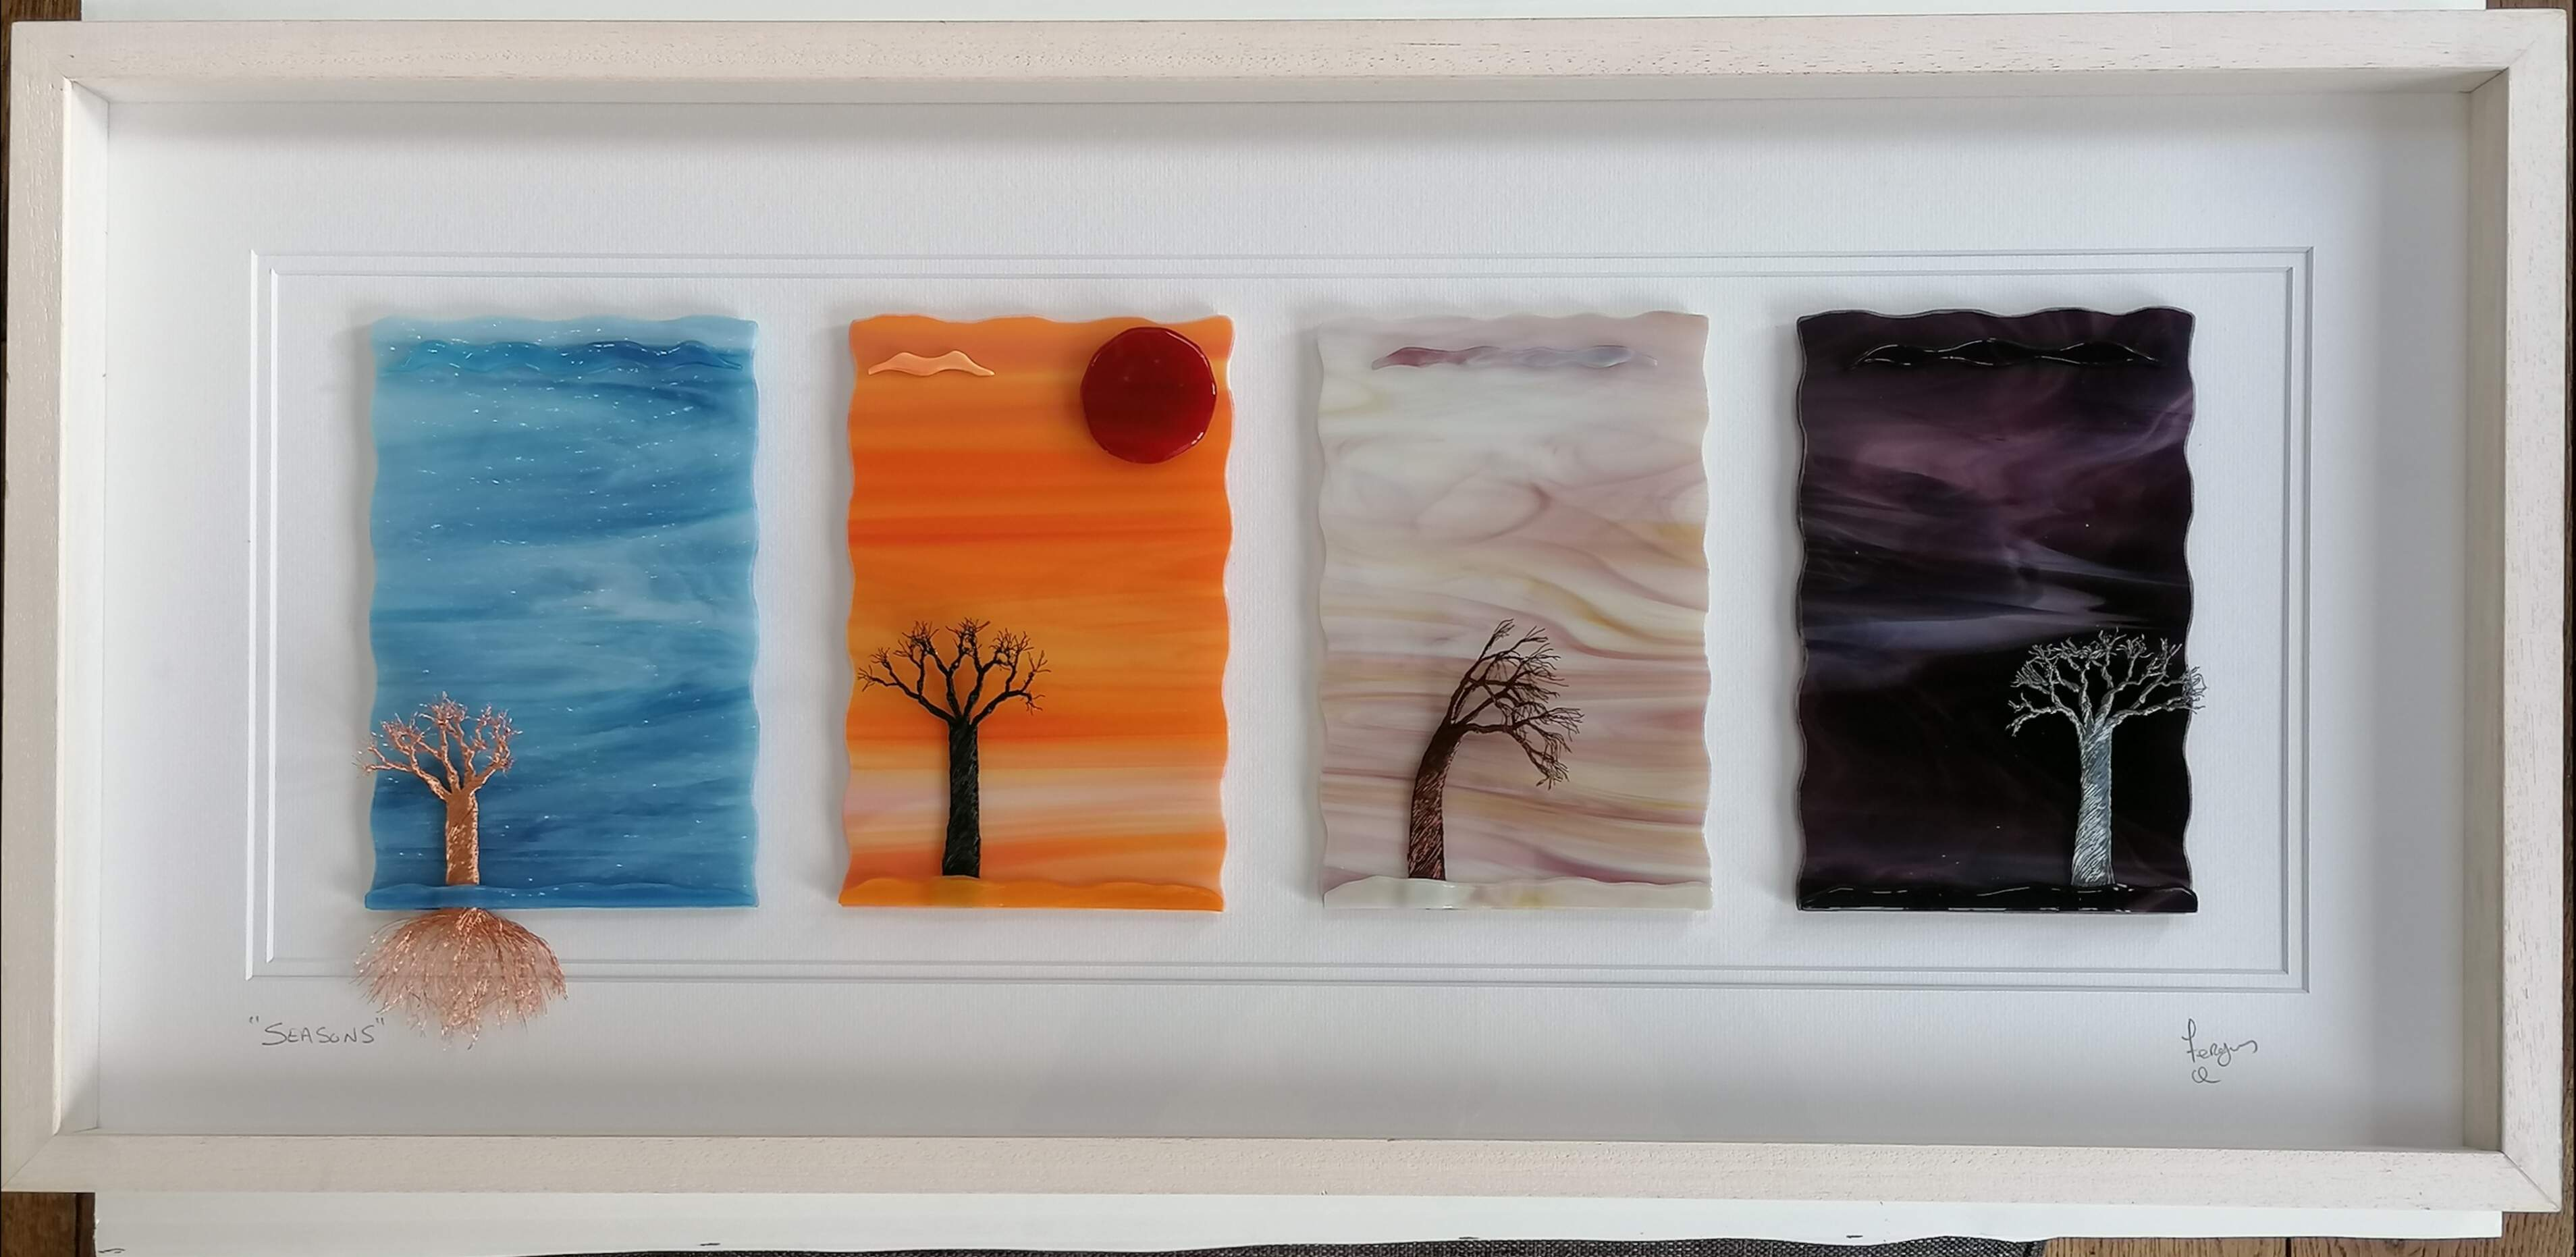 Glass Art picture displaying 4 panels representing the Seasons